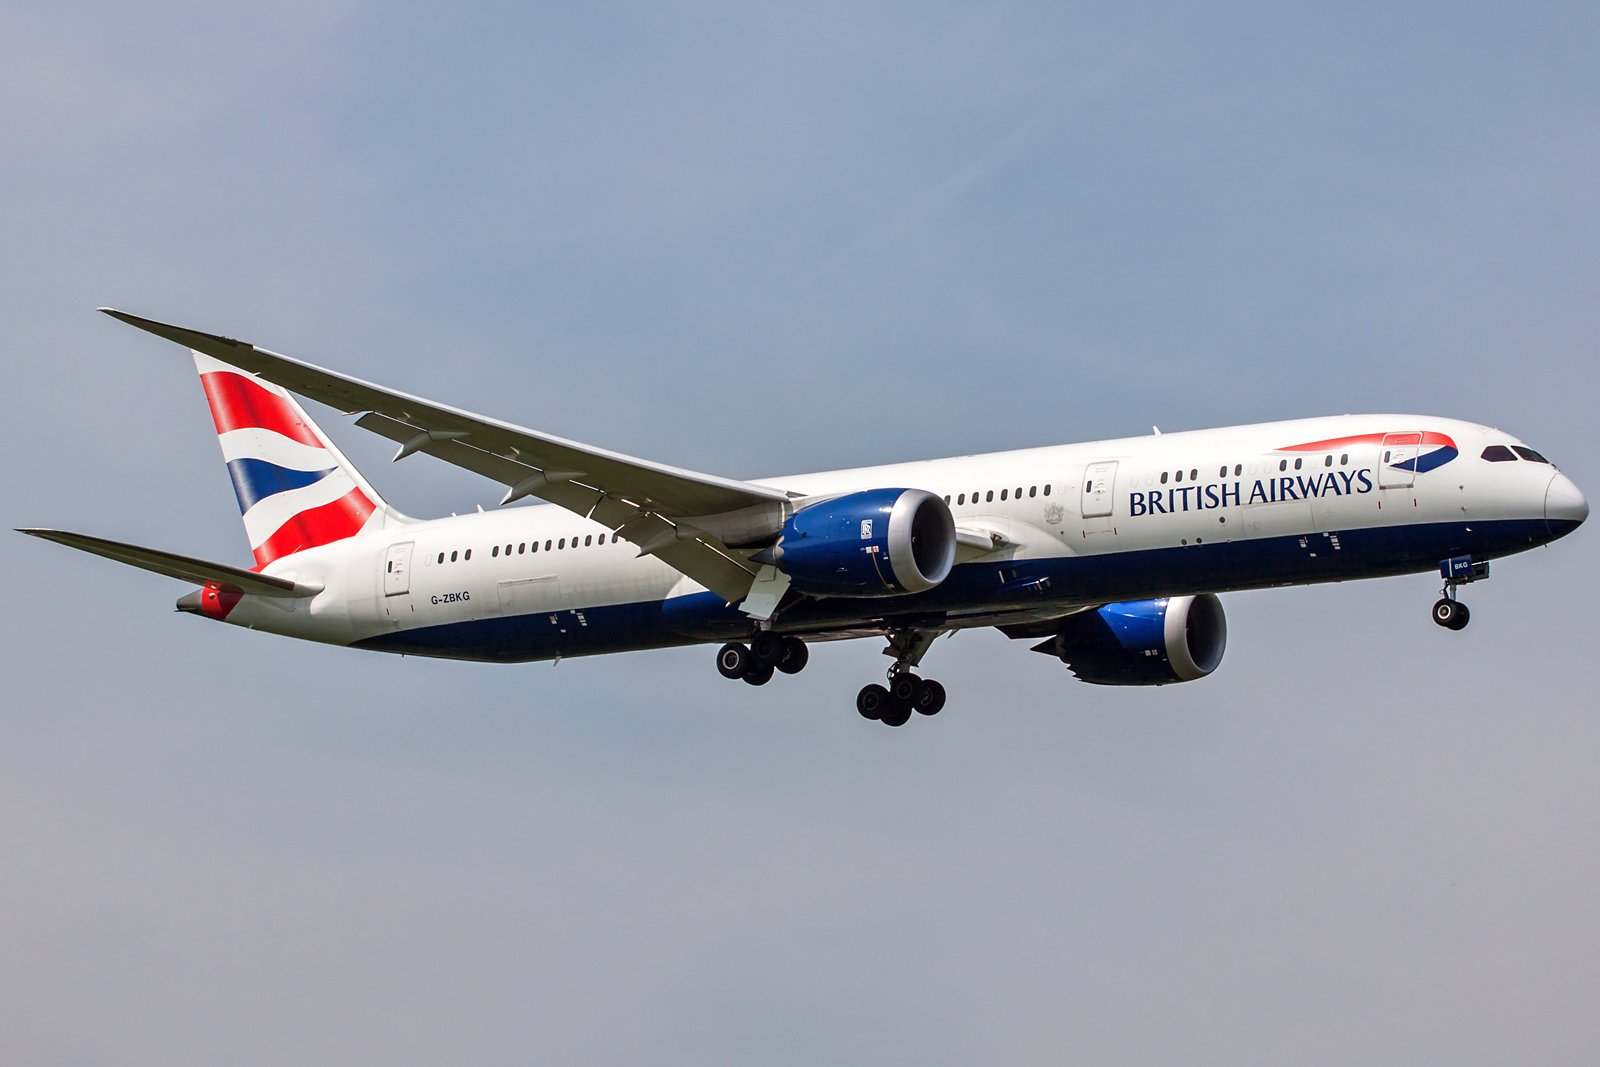 British Airways Boeing 787-9 Dreamliner G-ZBKG